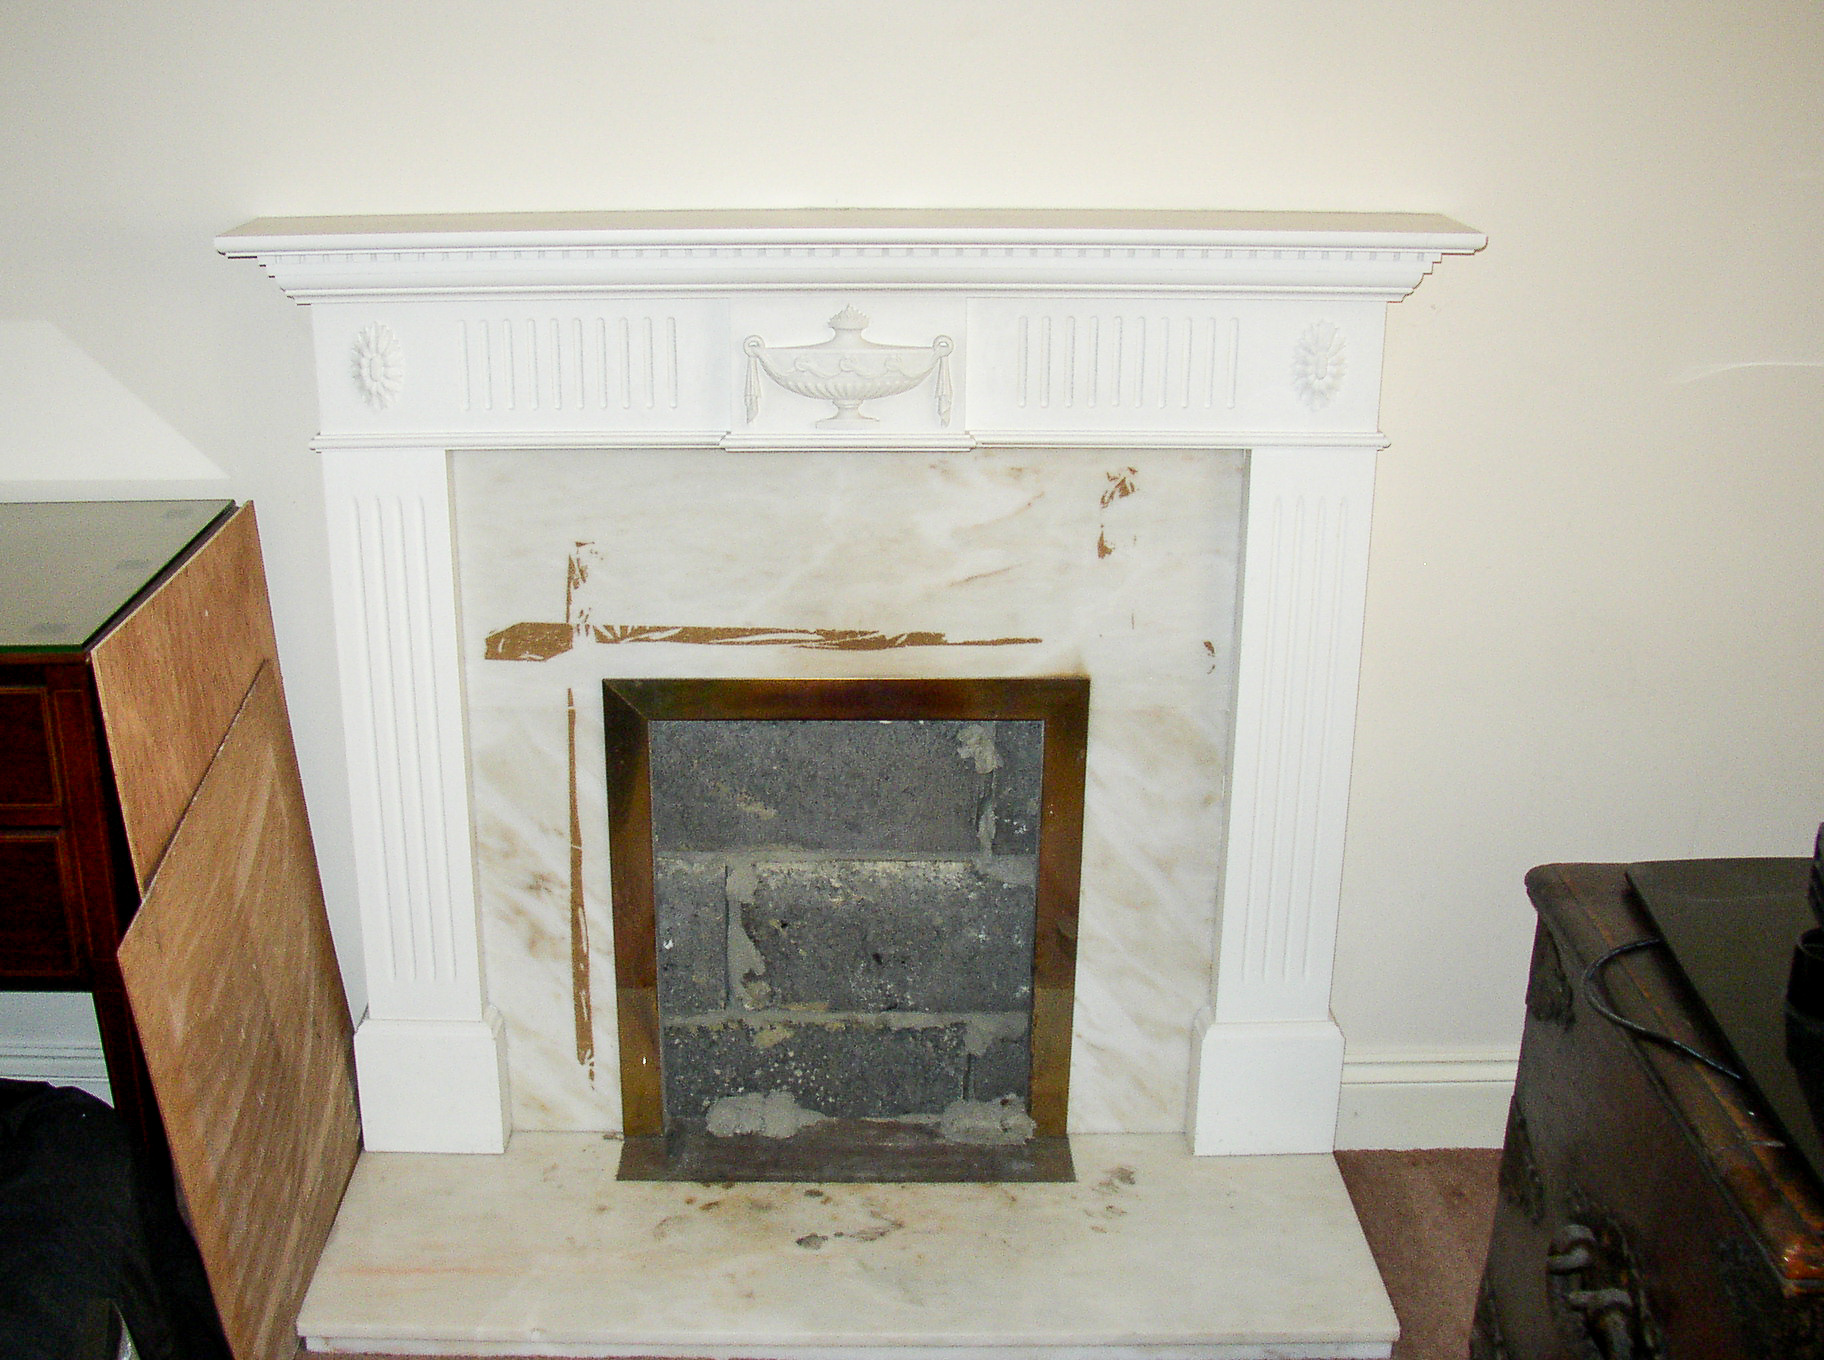 Bricked up fireplace